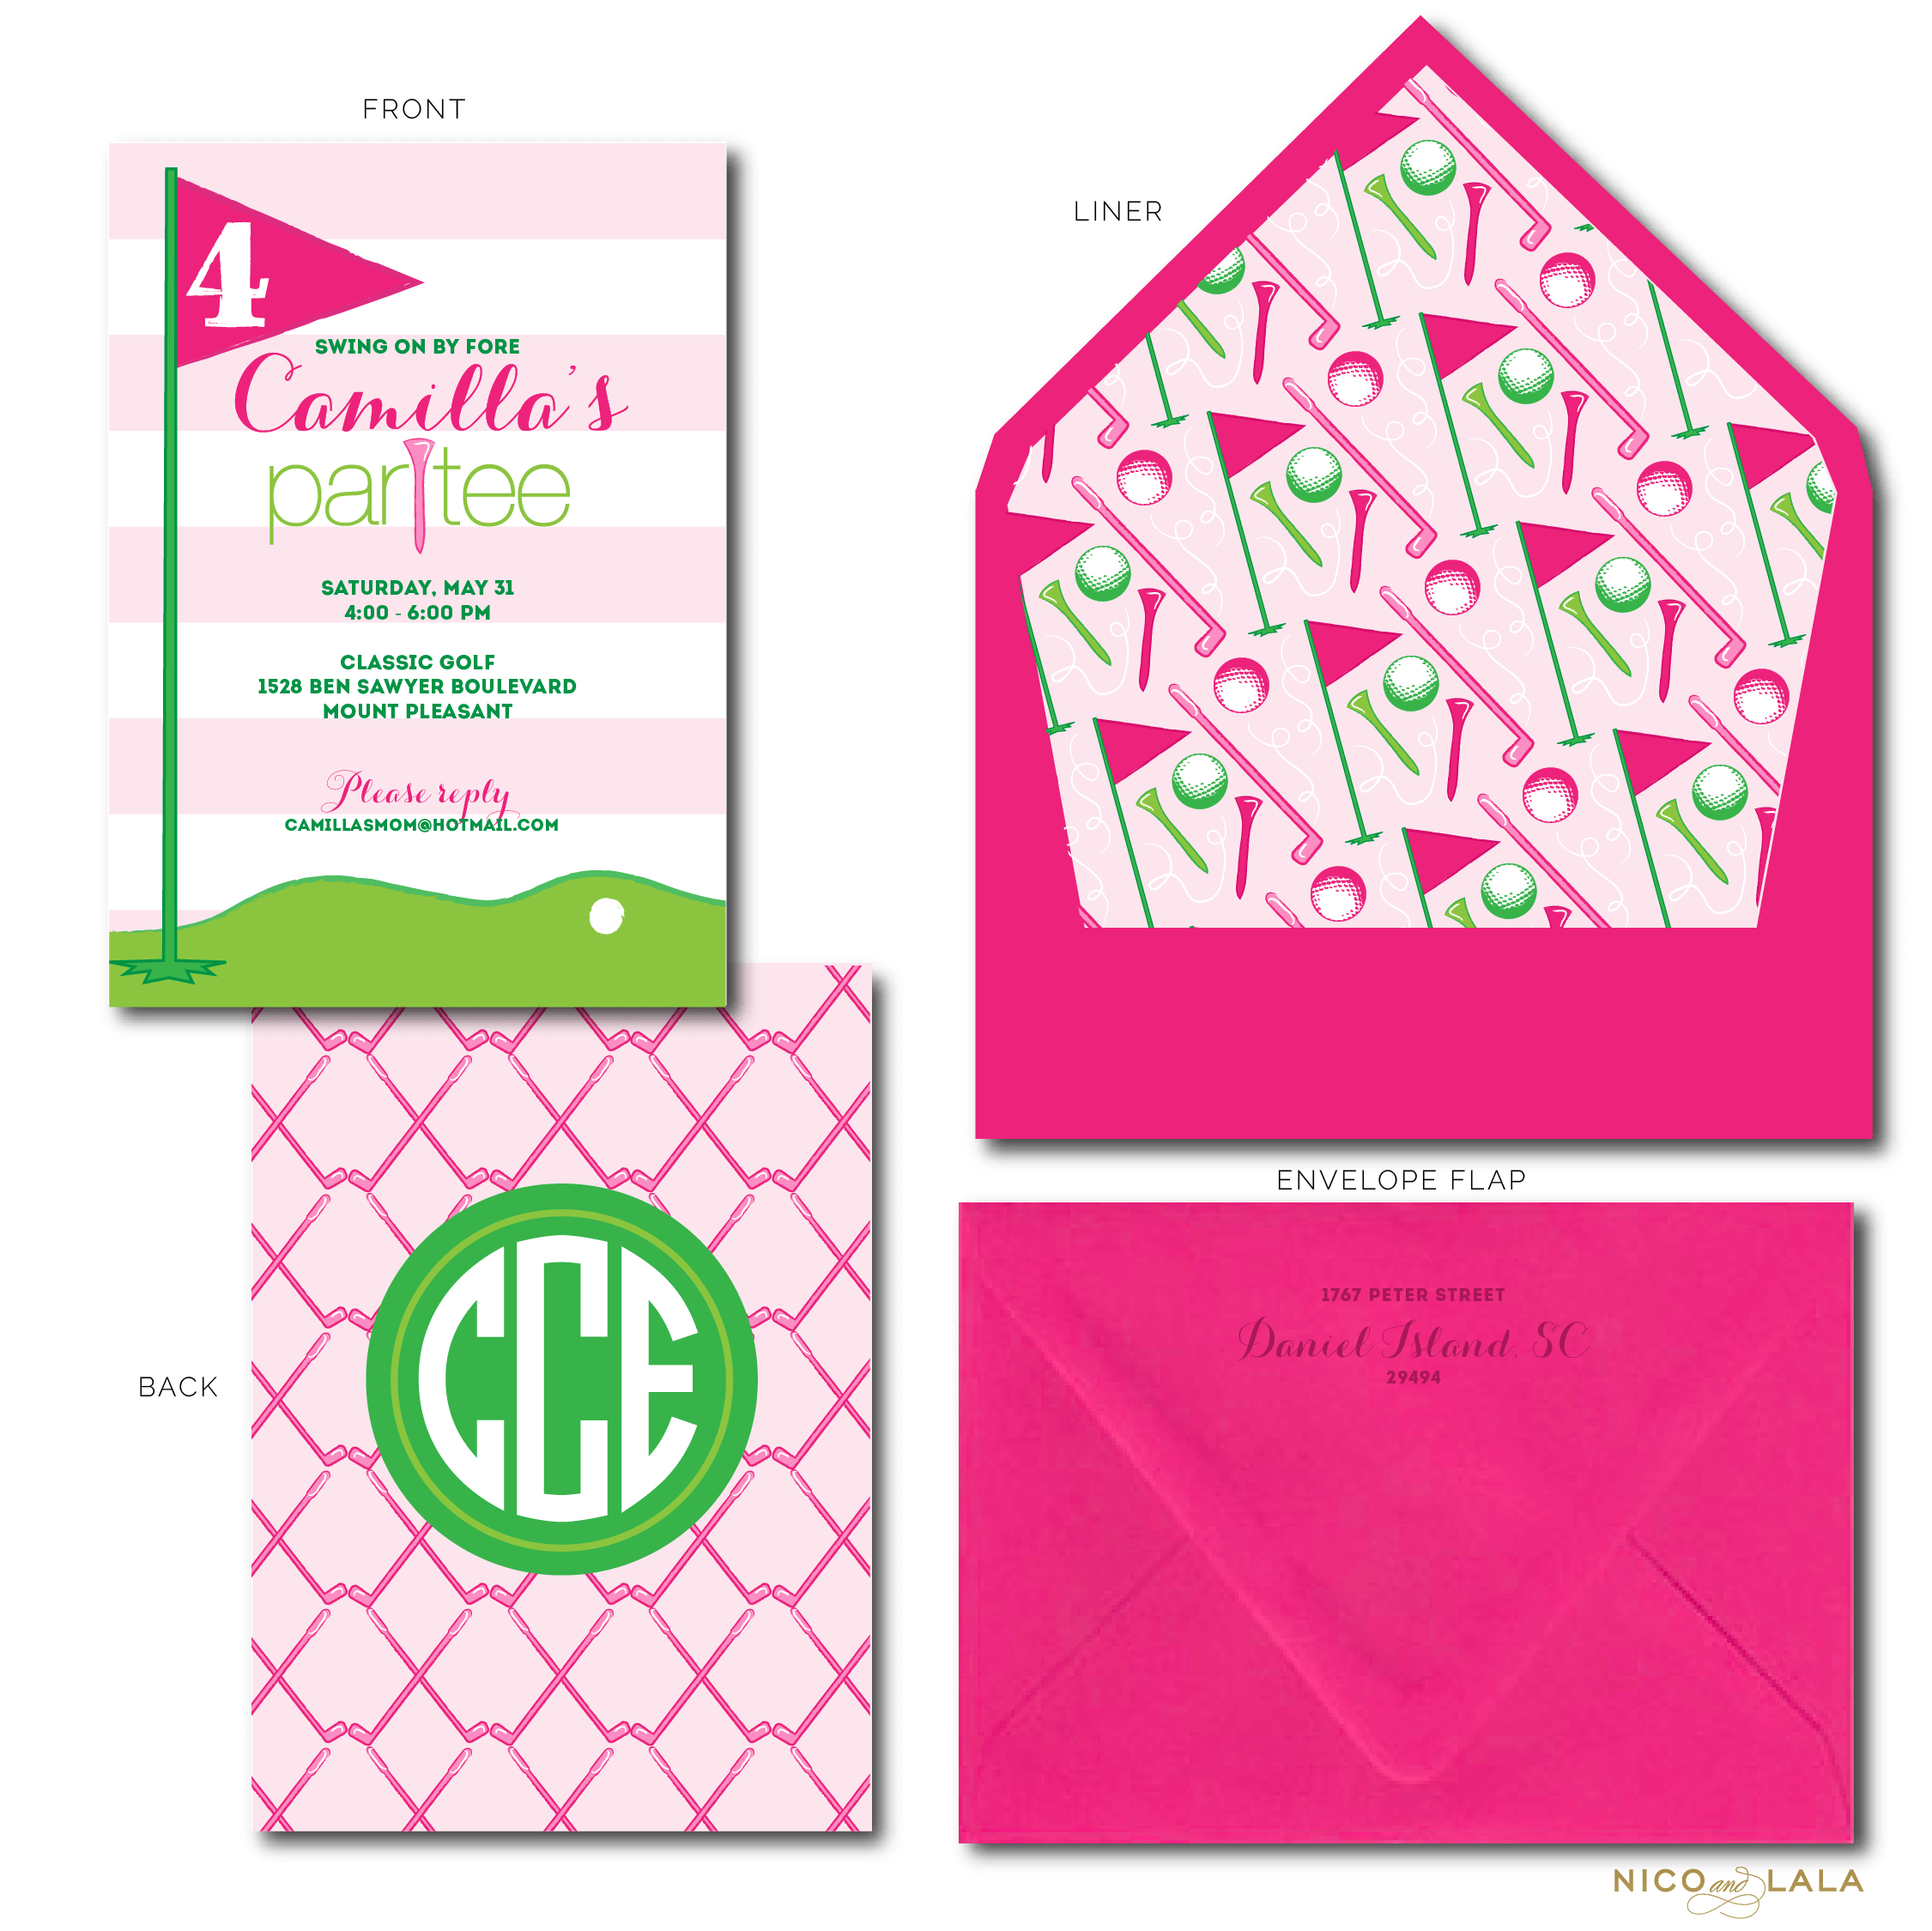 Girly golf birthday invitations nico and lala girly golf birthday invitation filmwisefo